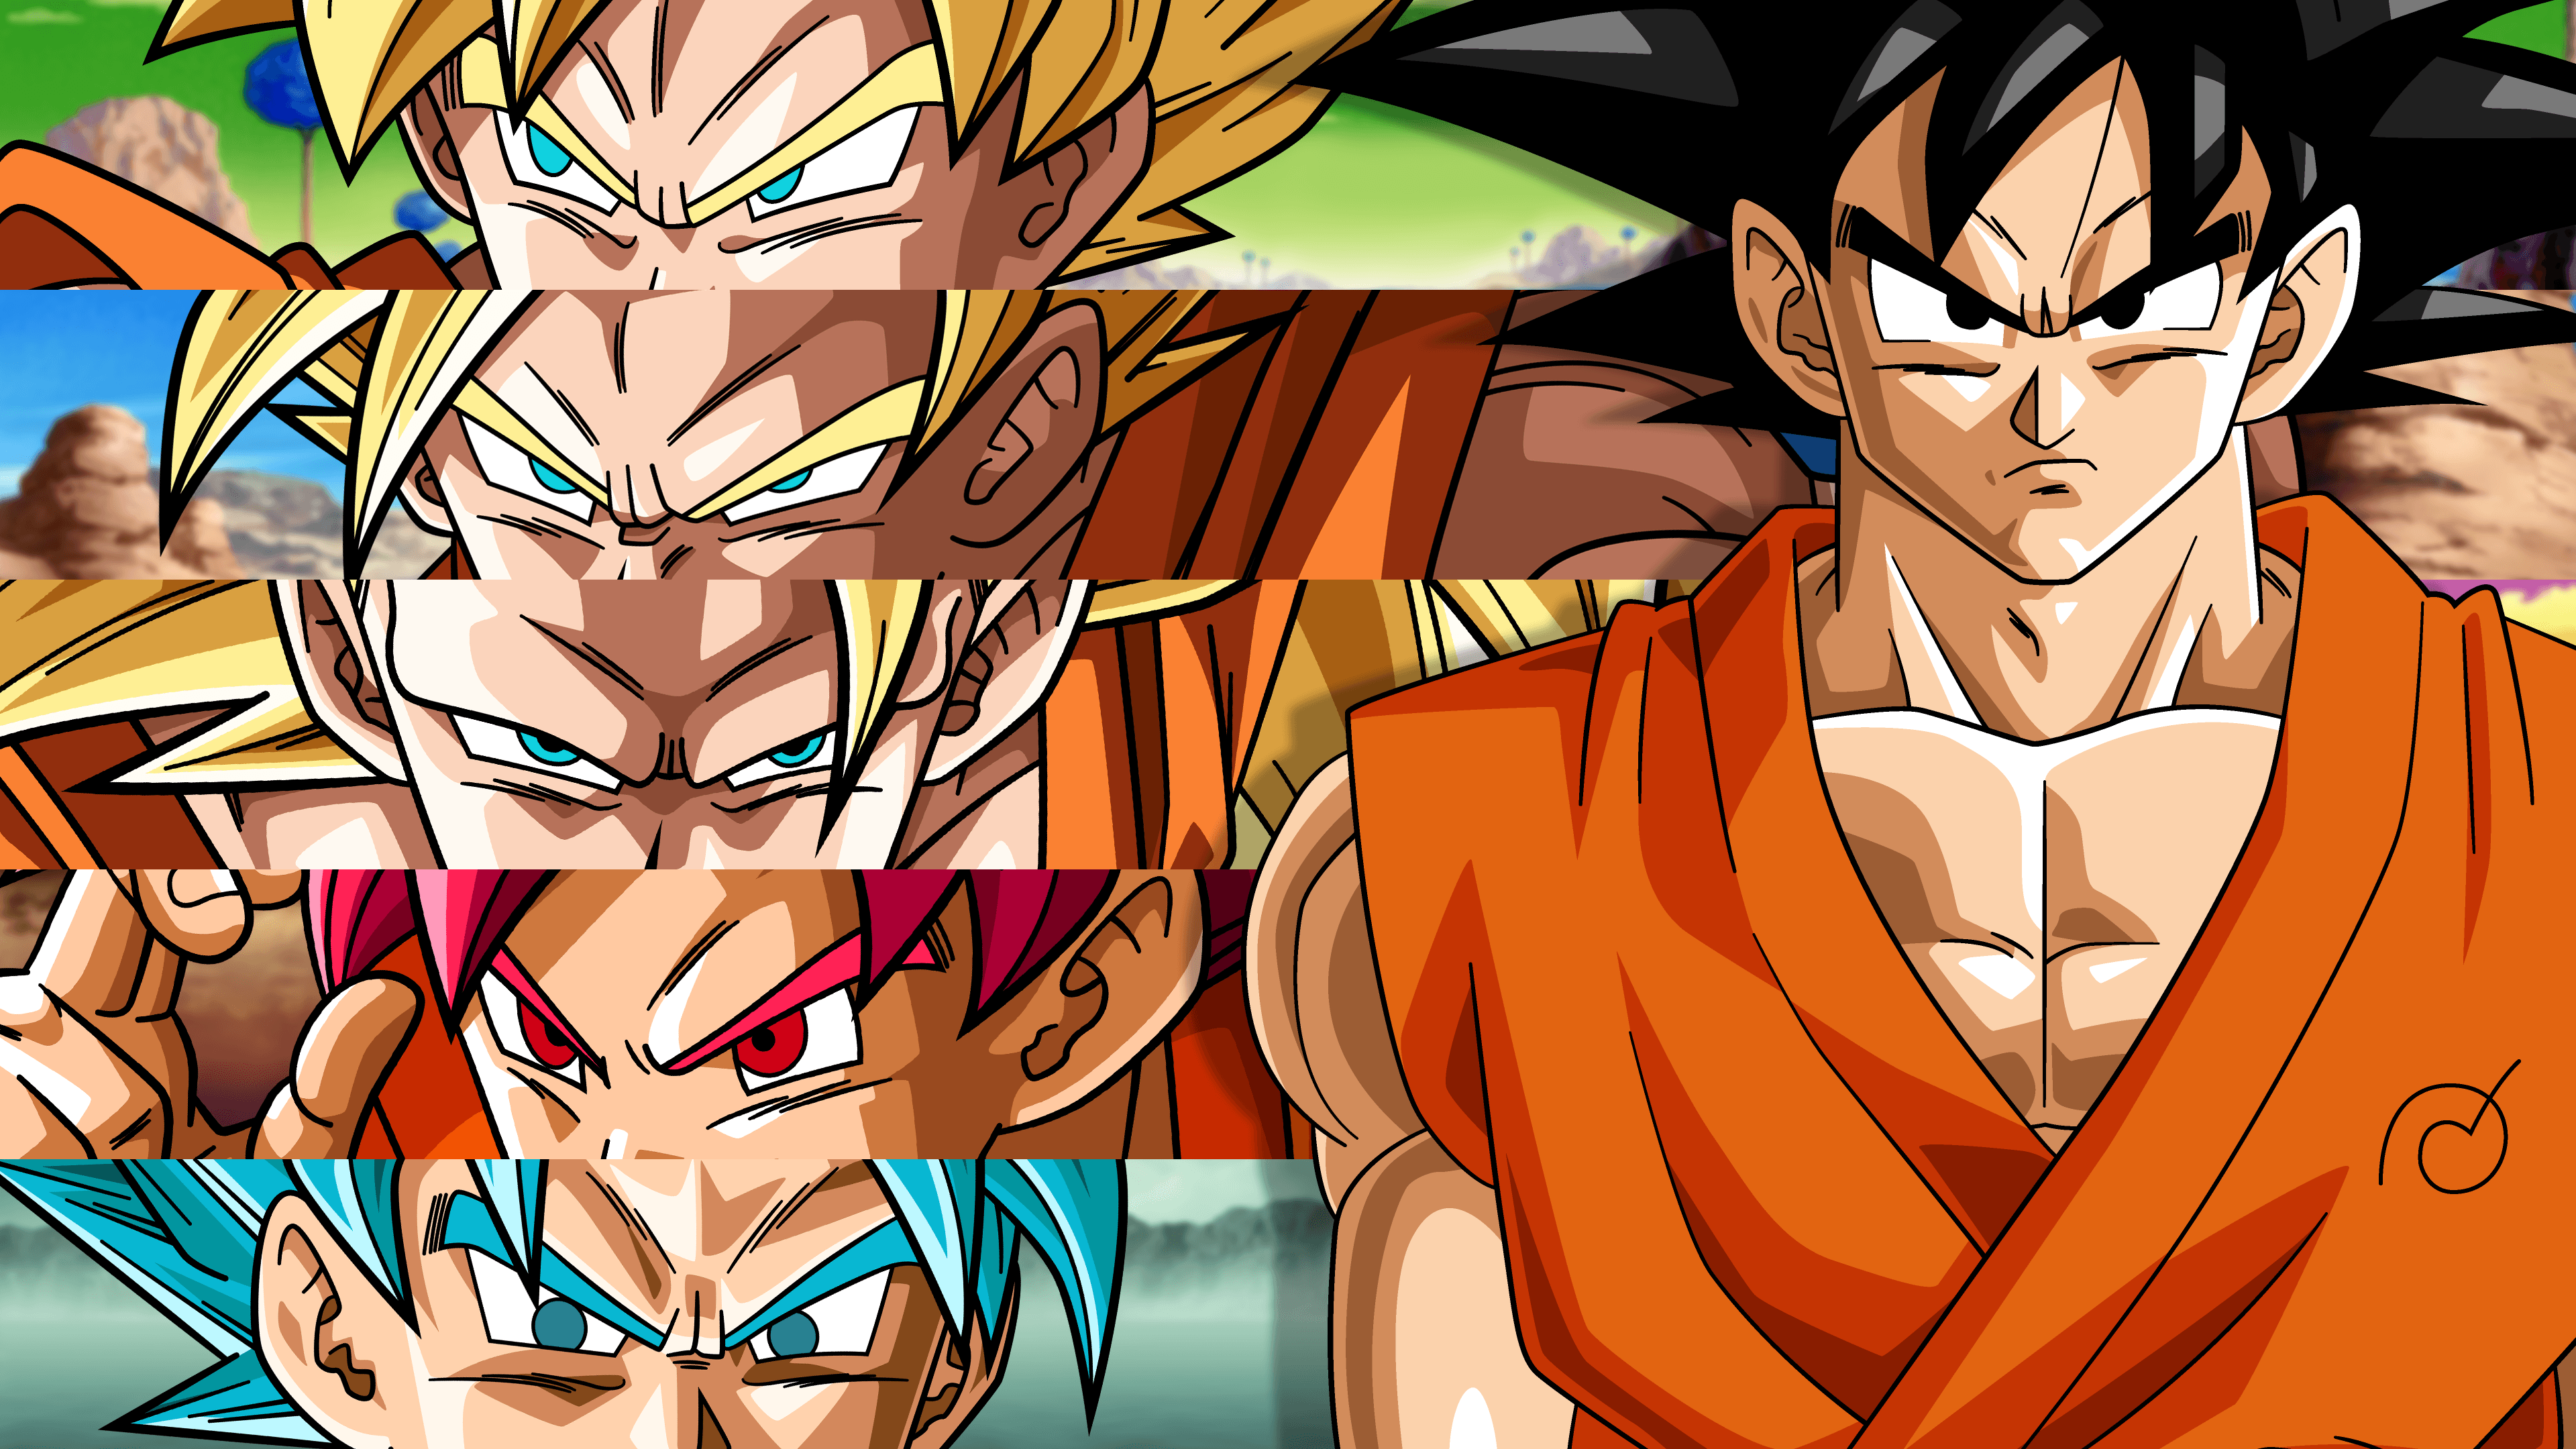 All Goku Forms Wallpapers Top Free All Goku Forms Backgrounds Wallpaperaccess